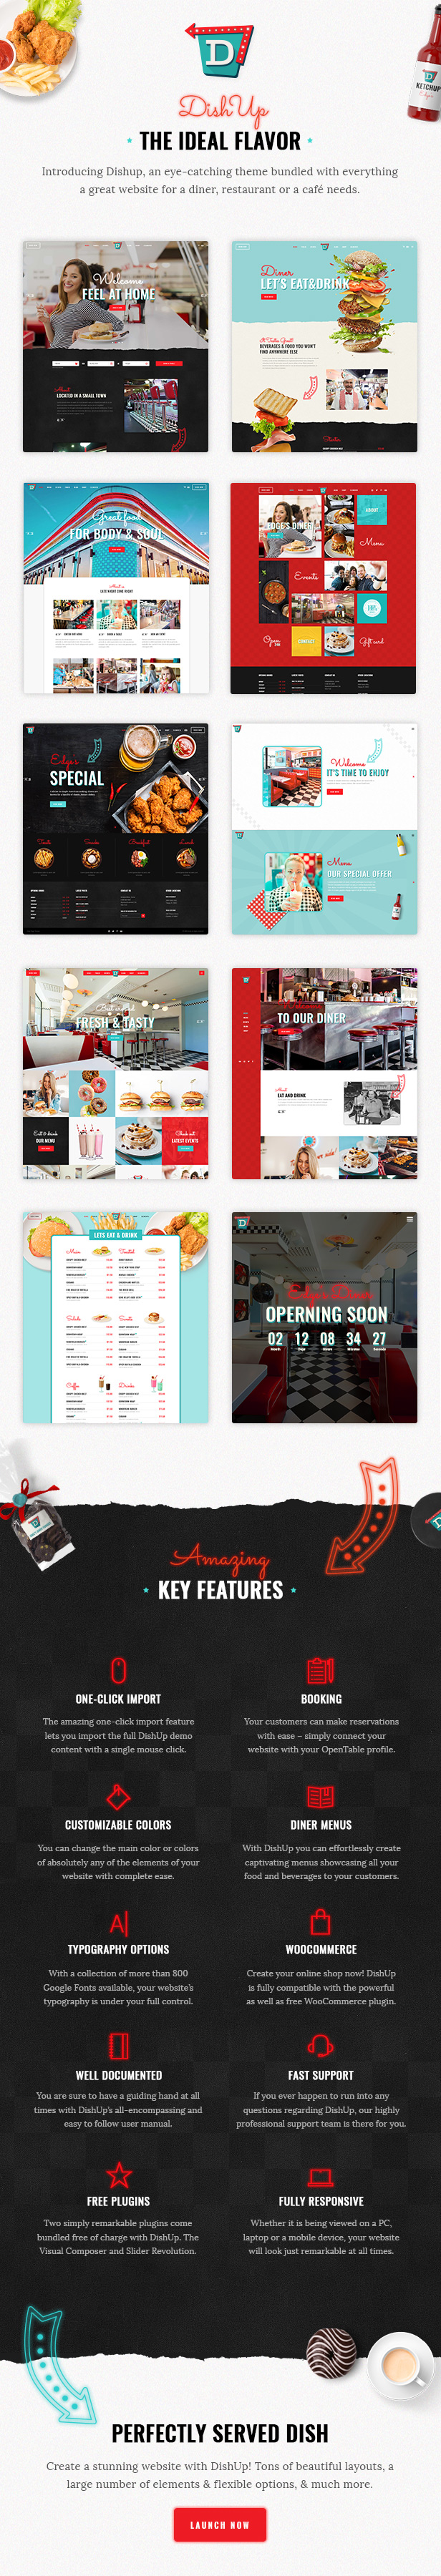 DishUp - A Theme for Diners and Restaurants   Prosyscom Tech 2